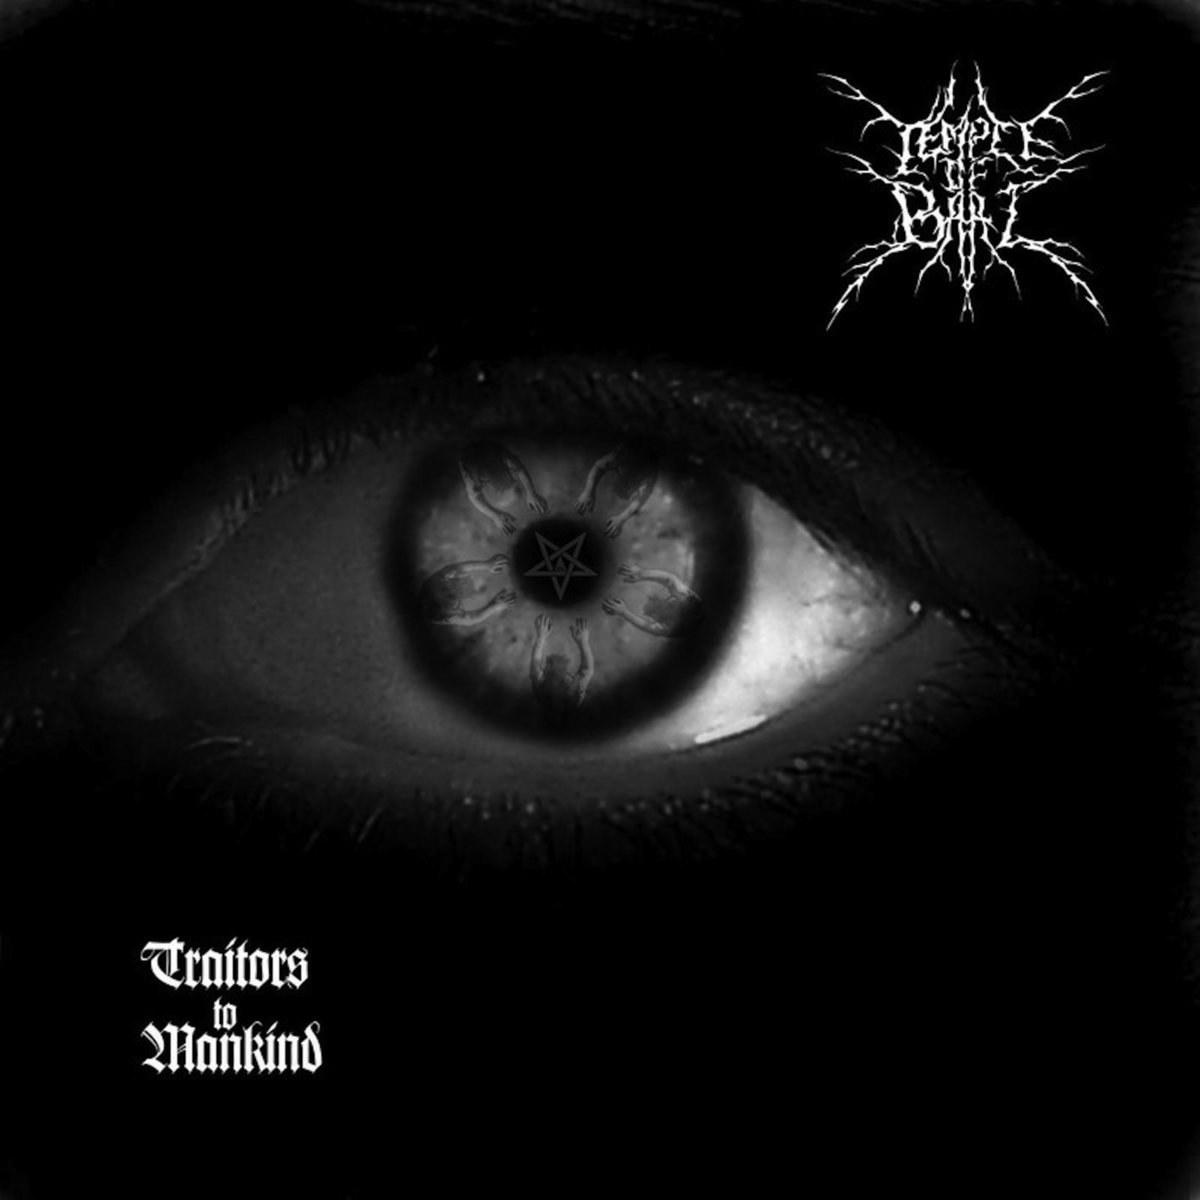 Temple of Baal - Traitors to Mankind